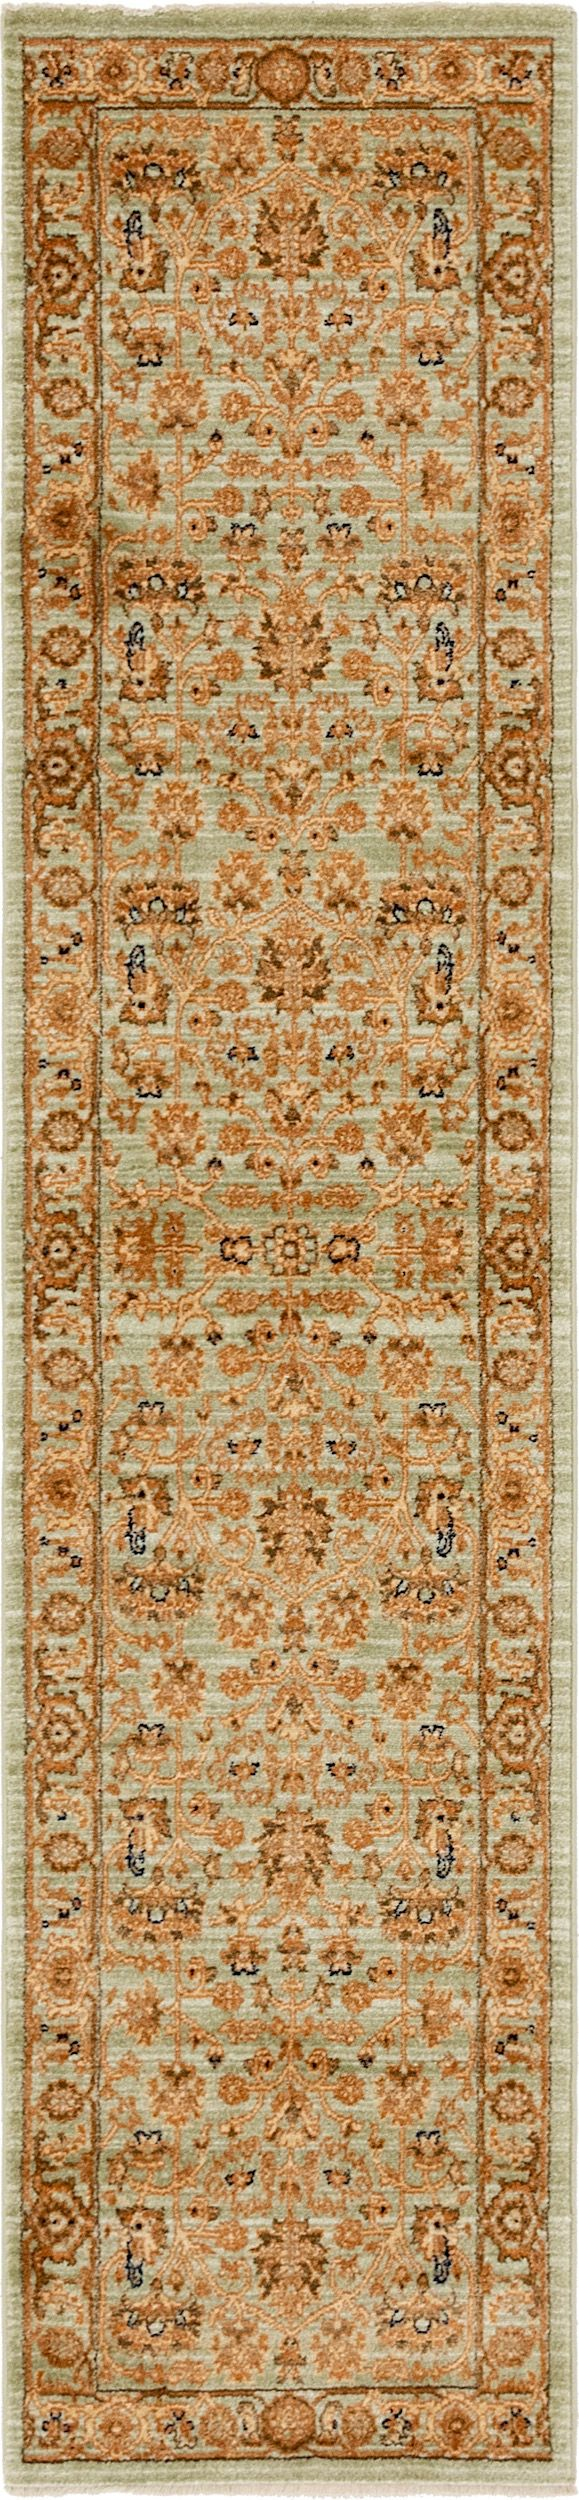 rugpal plaza traditional area rug collection